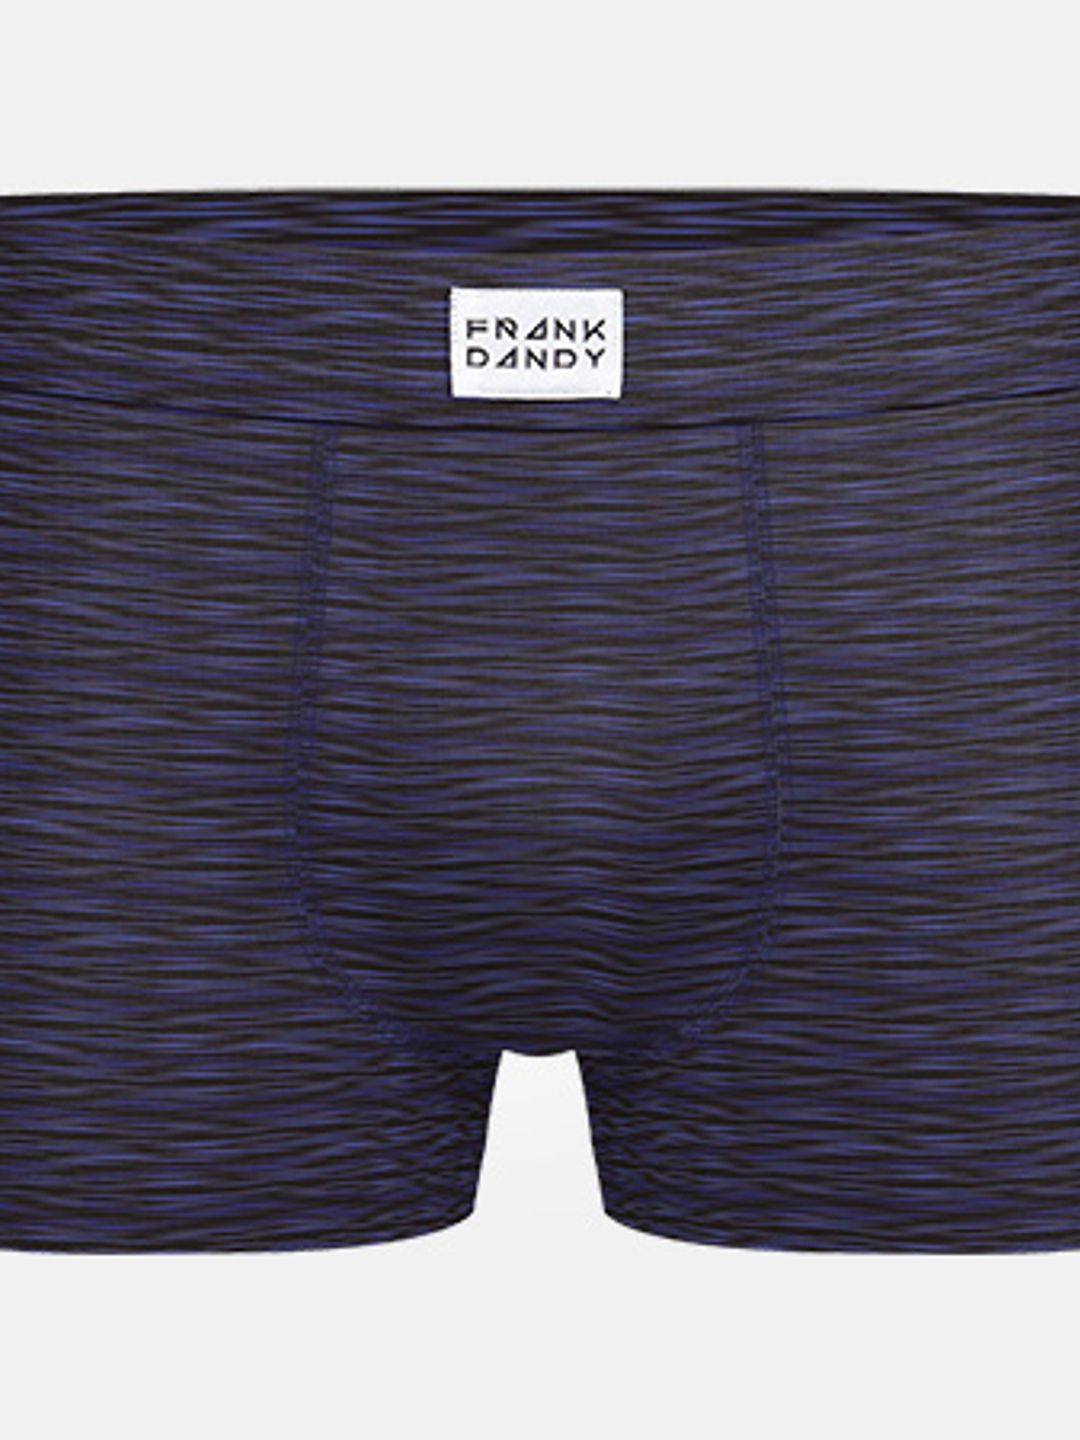 2-Pack Bamboo Trunk - Black/Space Grey Navy